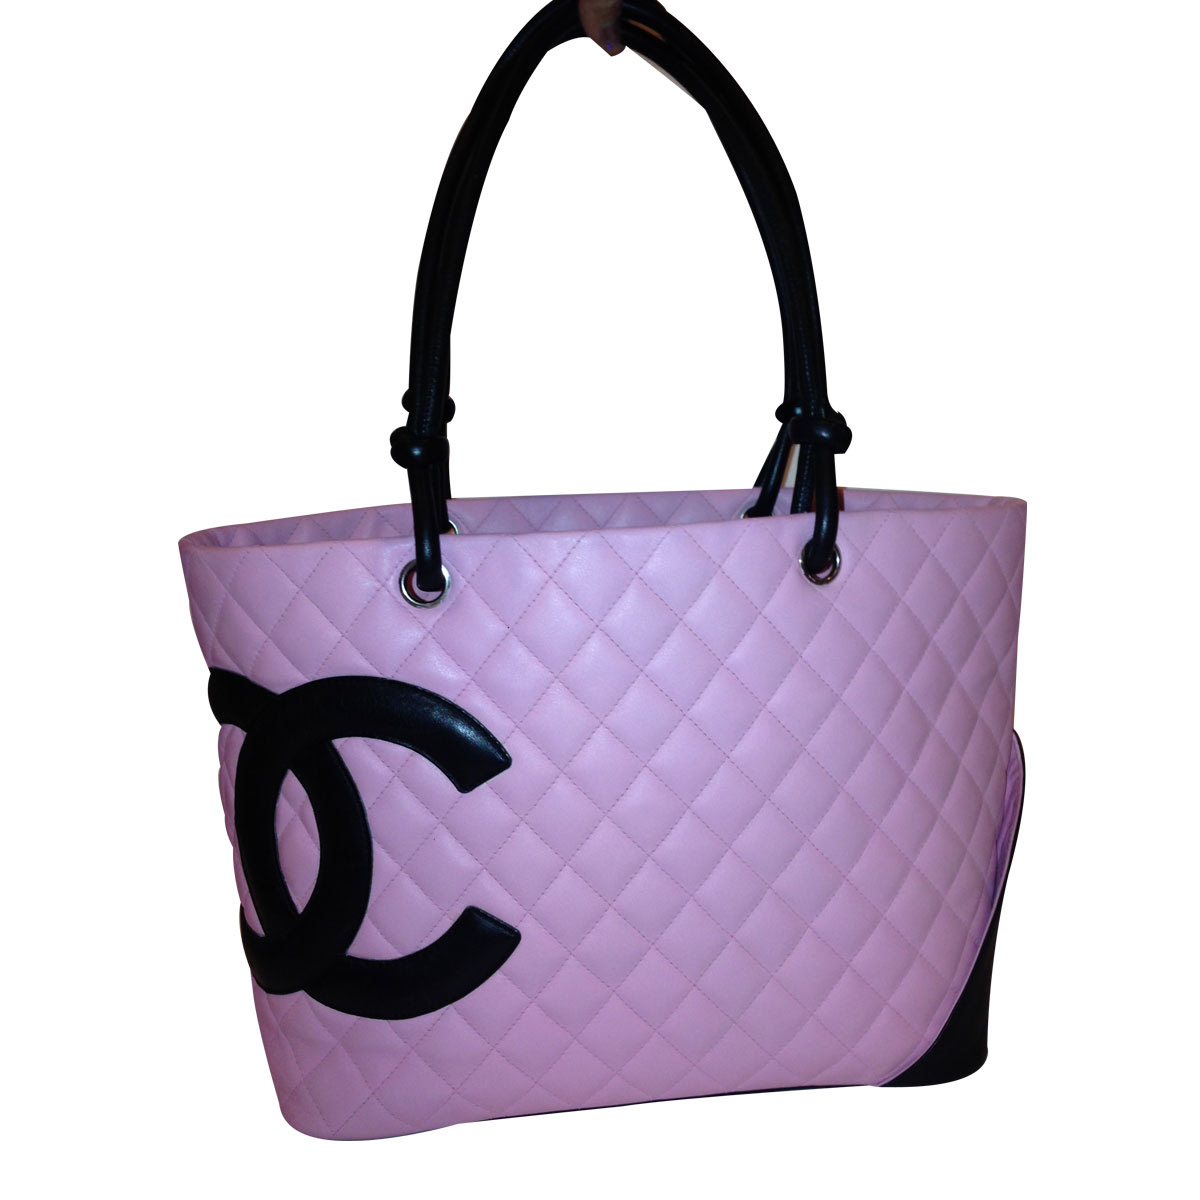 6128fcb8d3 Over 1000 Authentic Chanel Pink Cambon Large Leather Tote Bag